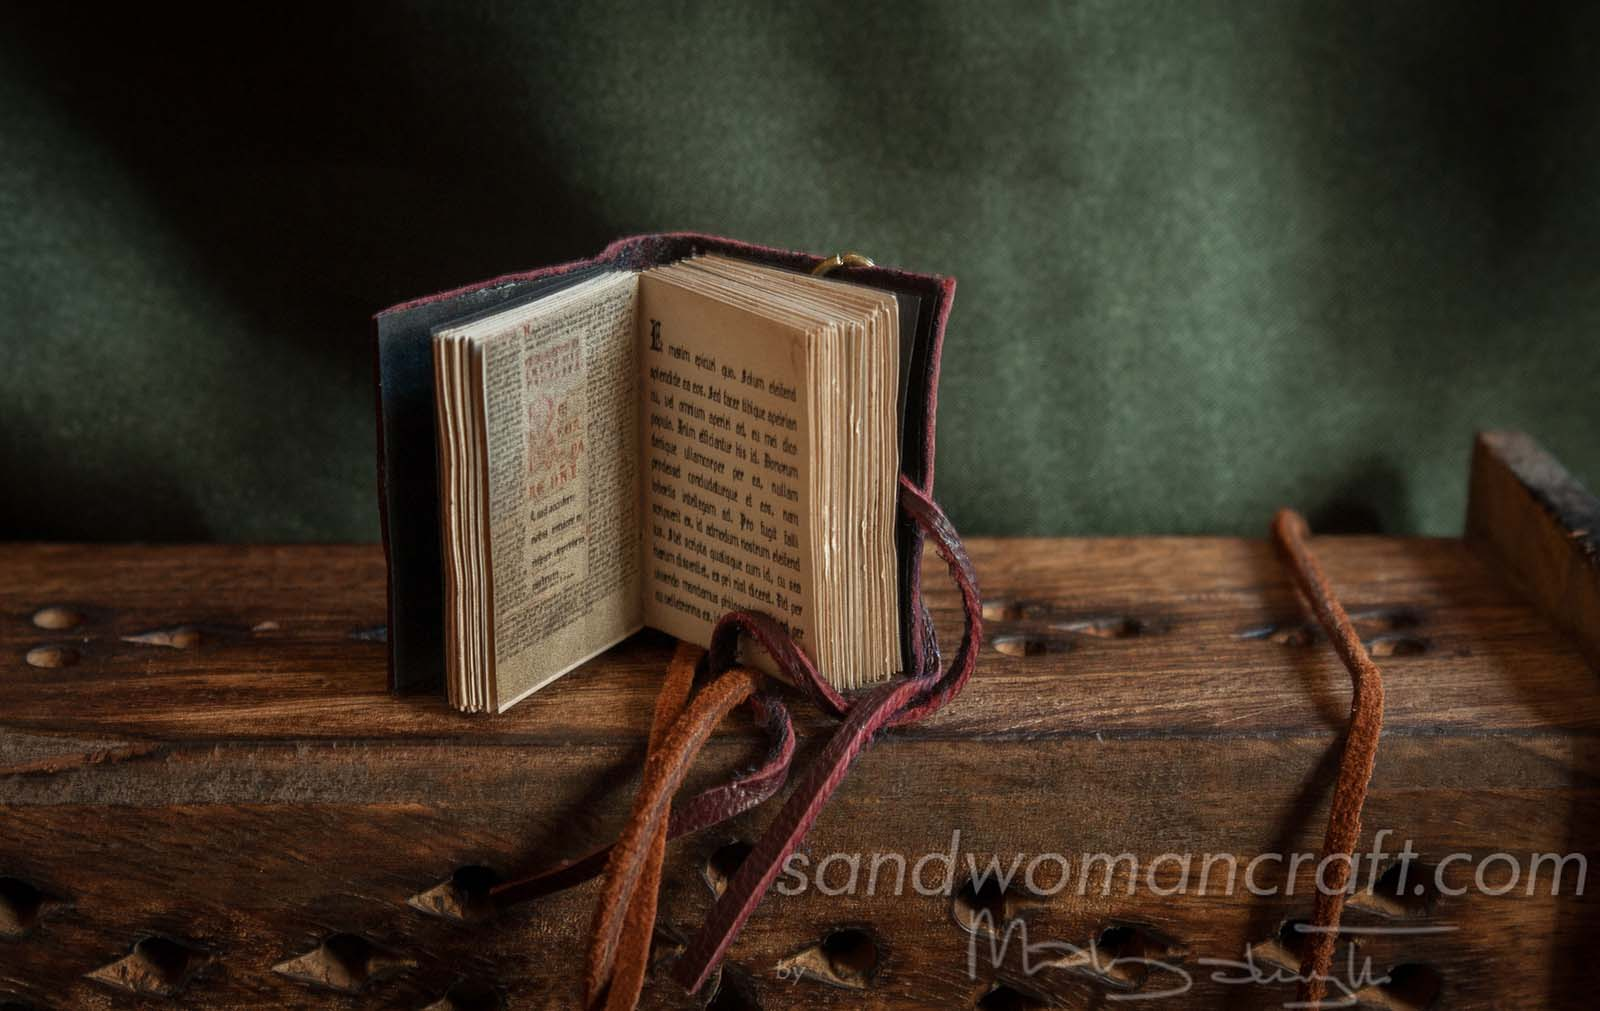 Miniature leather book necklace with real medieval book inside